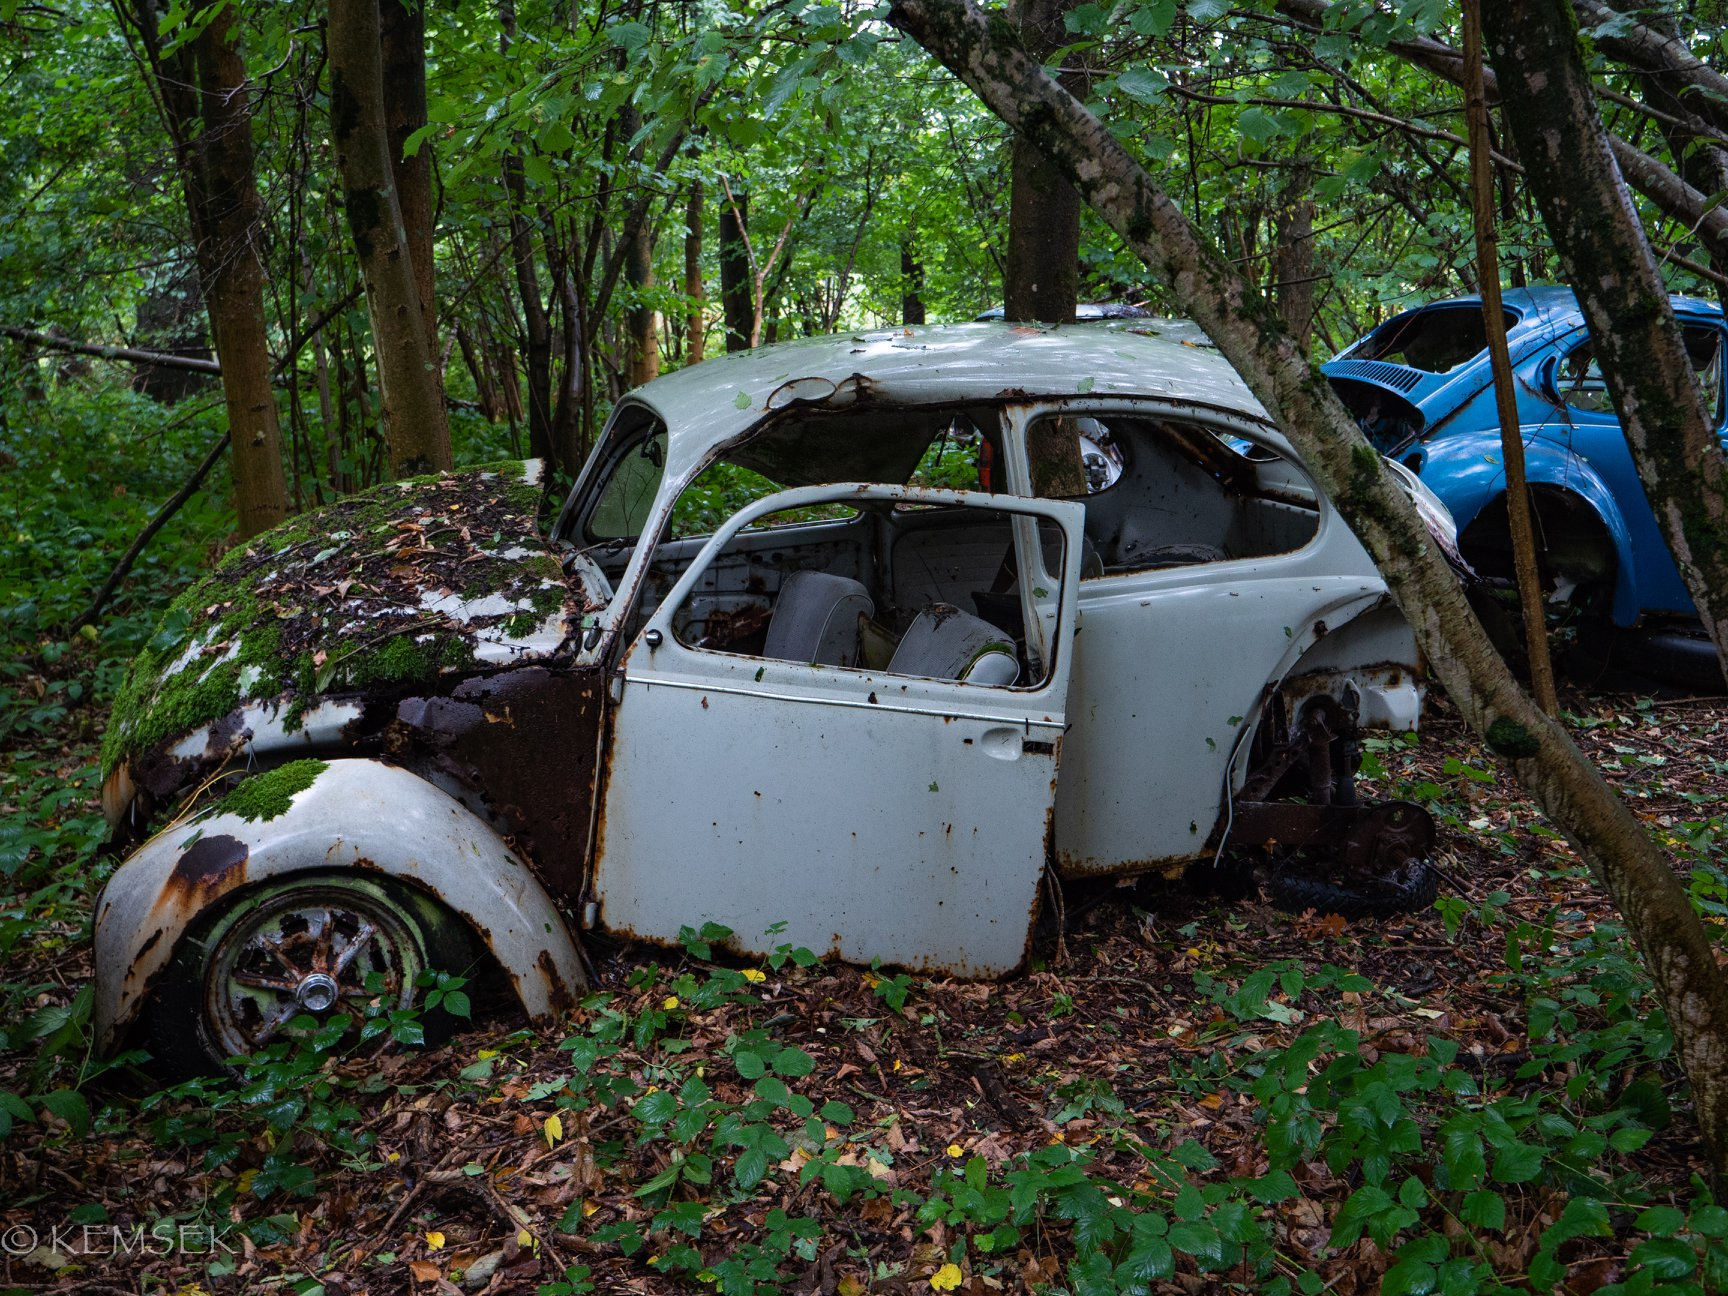 VW-in-rust-3